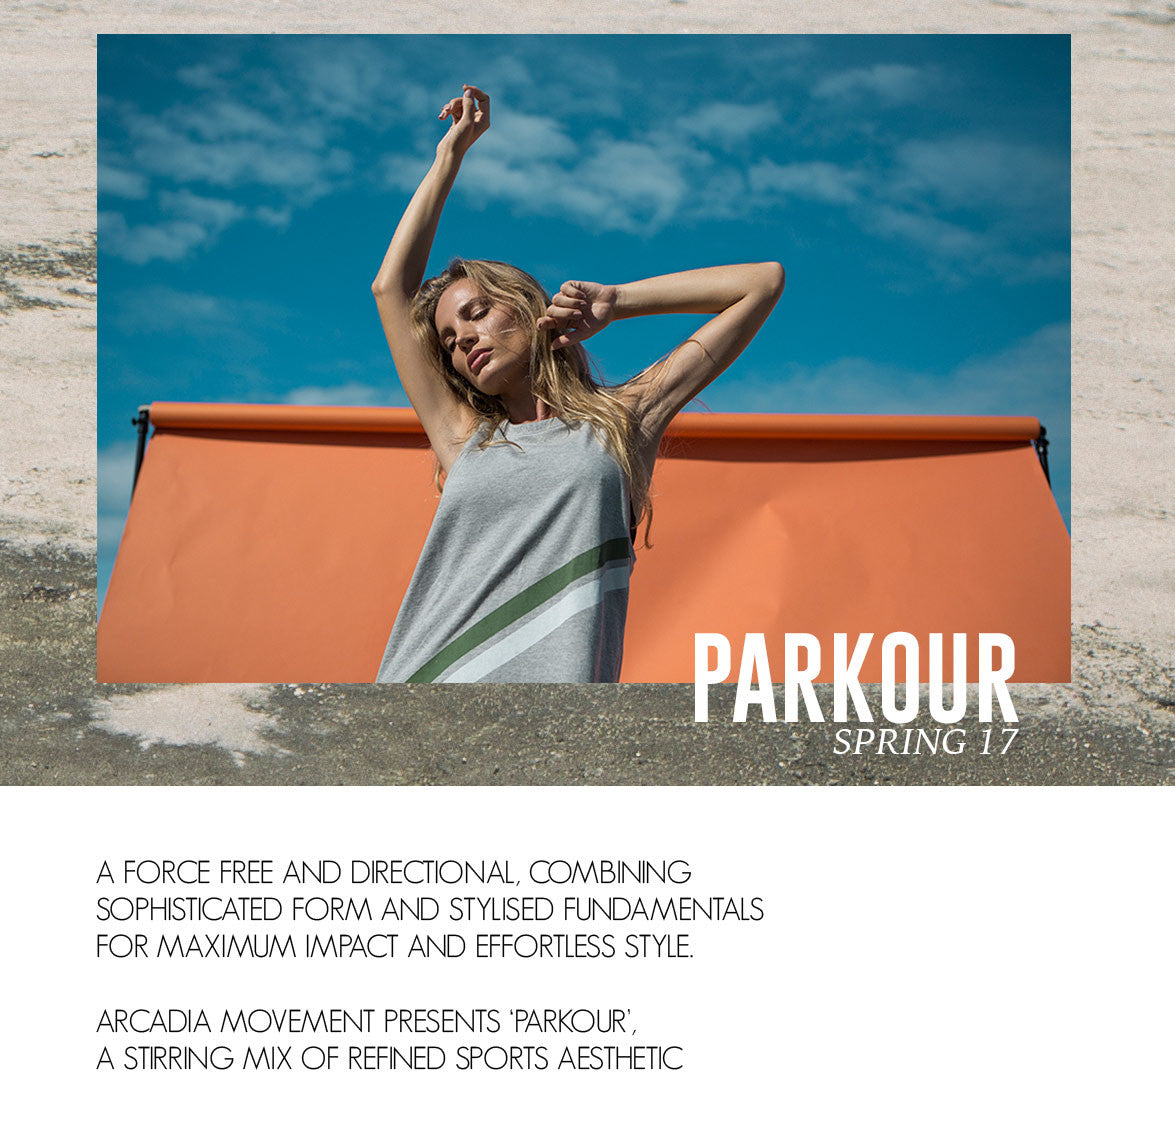 PARKOUR Spring 17 by Arcadia